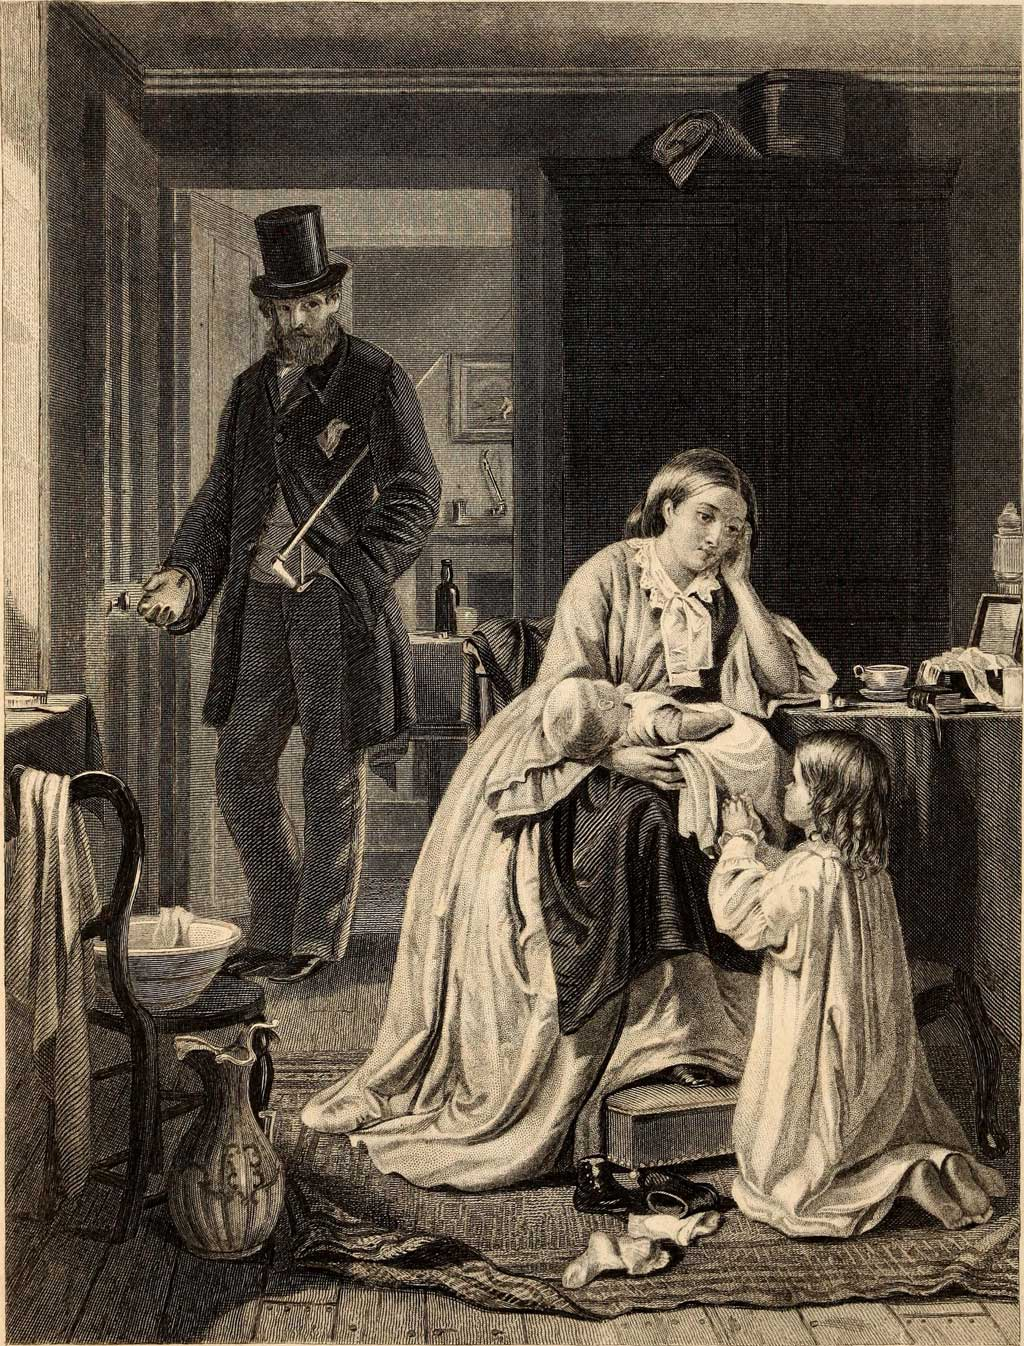 Household scene showing husband walking out the door, while woman holds baby and attends to small girl